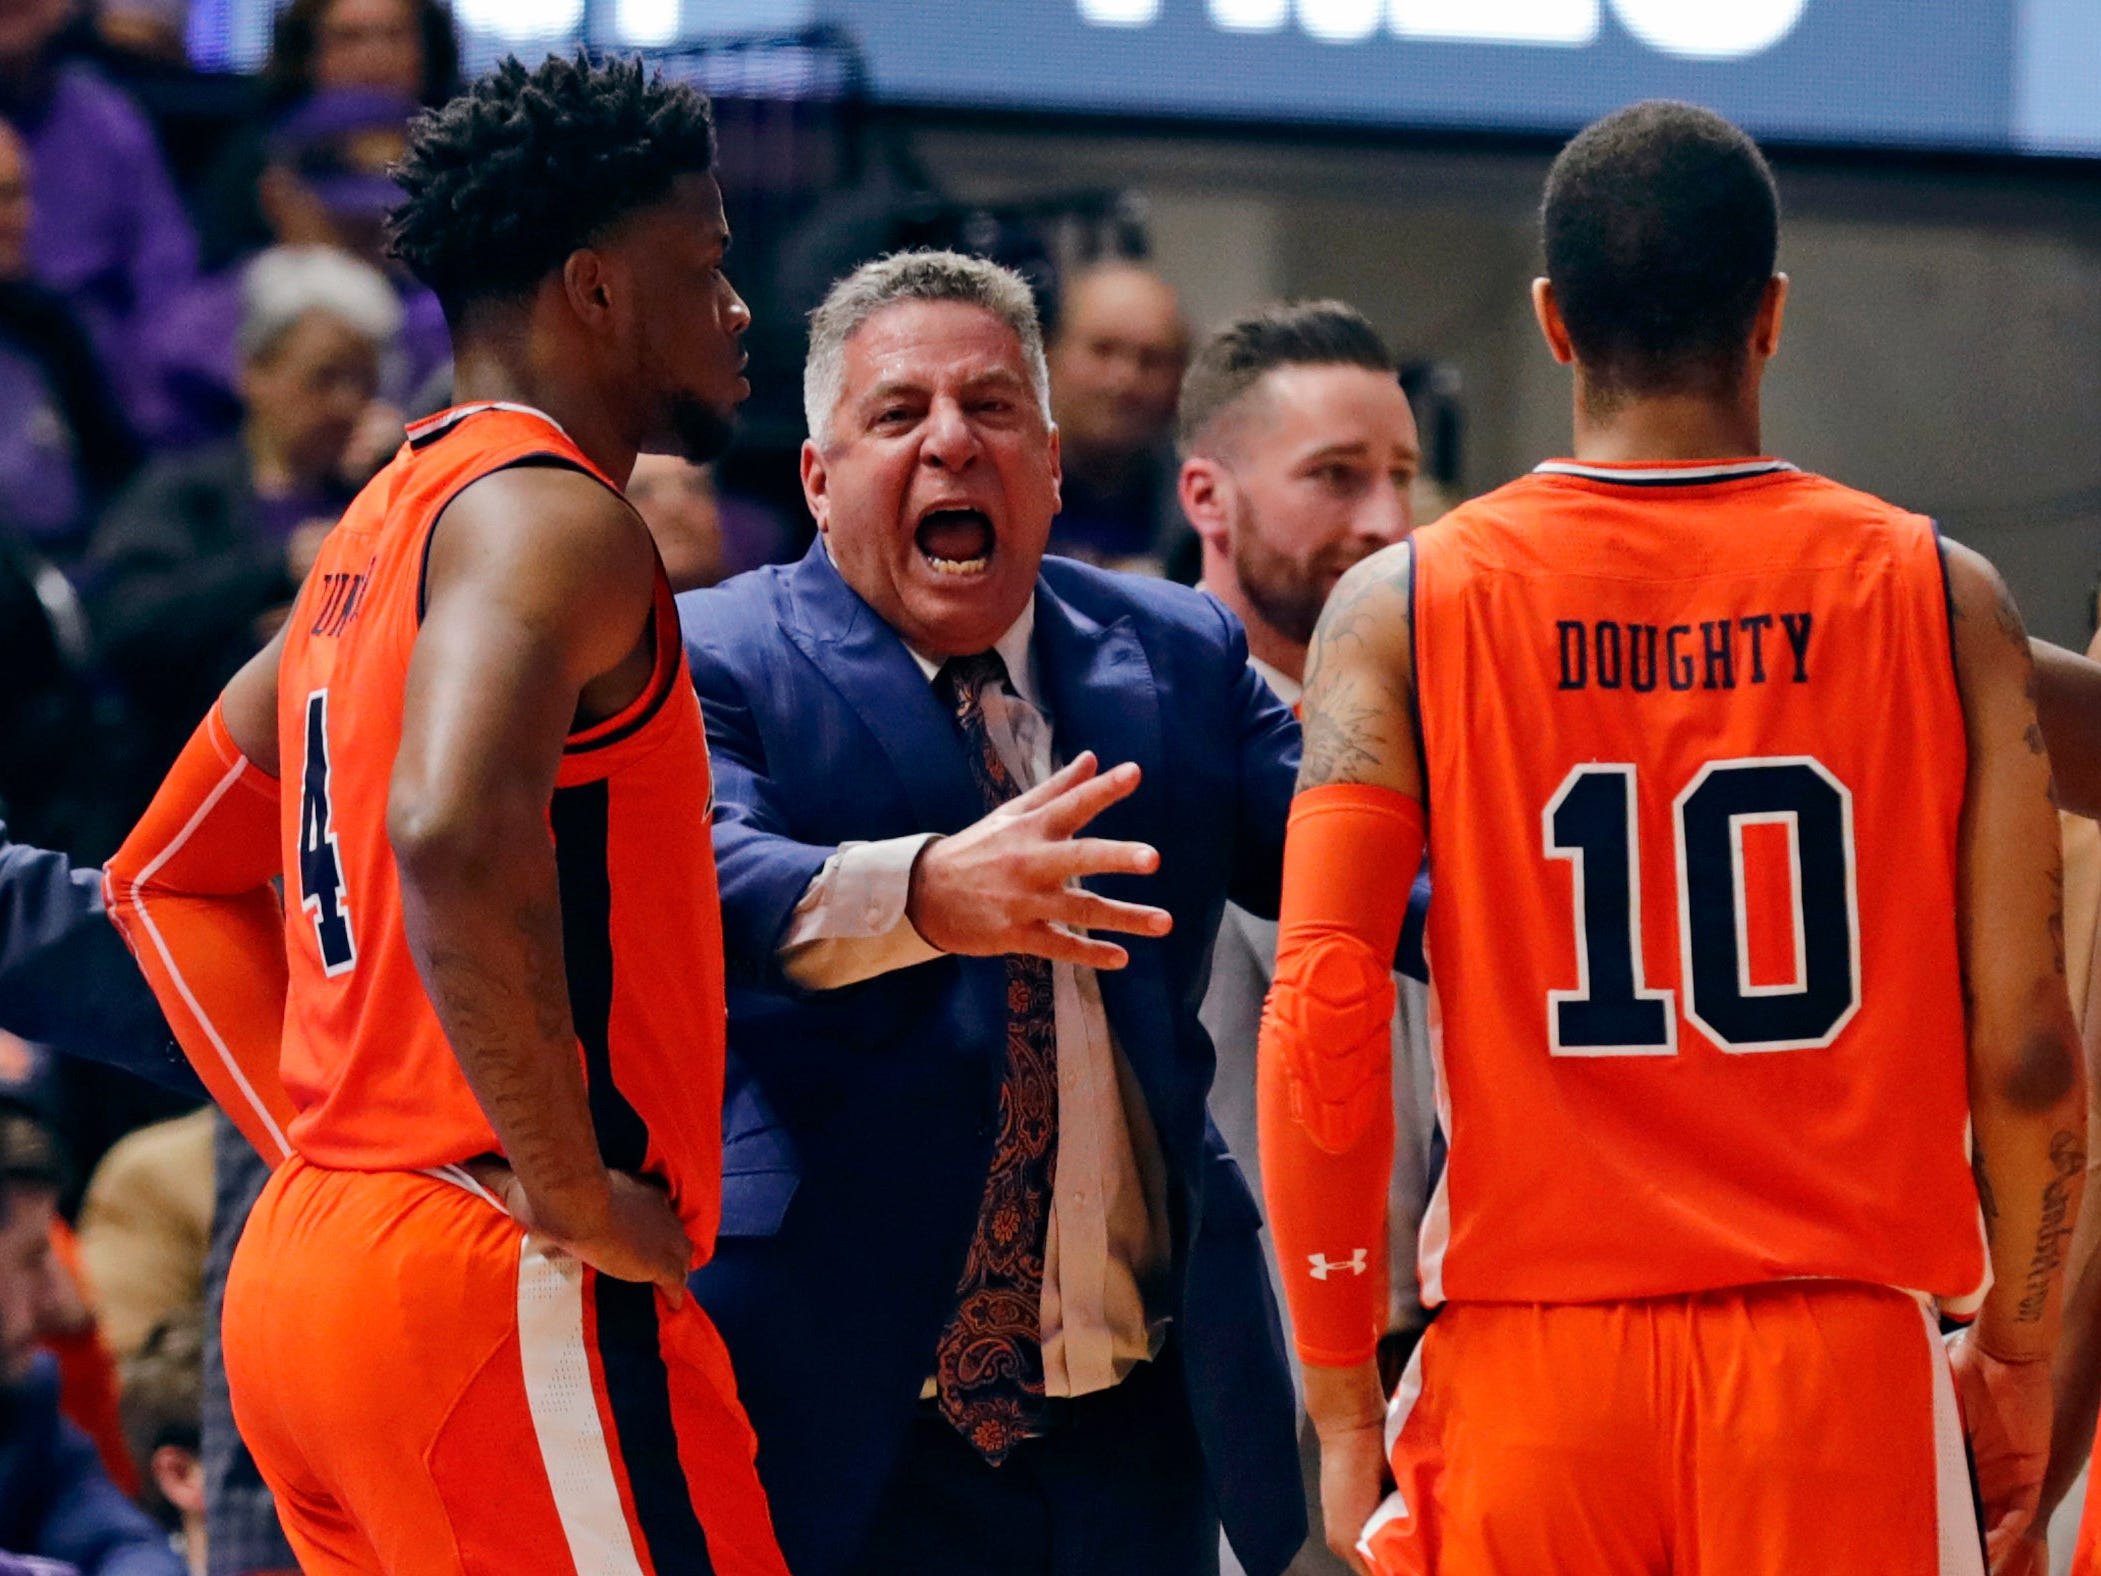 Auburn head coach Bruce Pearl talkis to players Malik Dunbar (left), Samir Doughty (center) and Anfernee McLemore (right) during a loss at LSU on Feb. 9, 2019, in Baton Rouge, La.